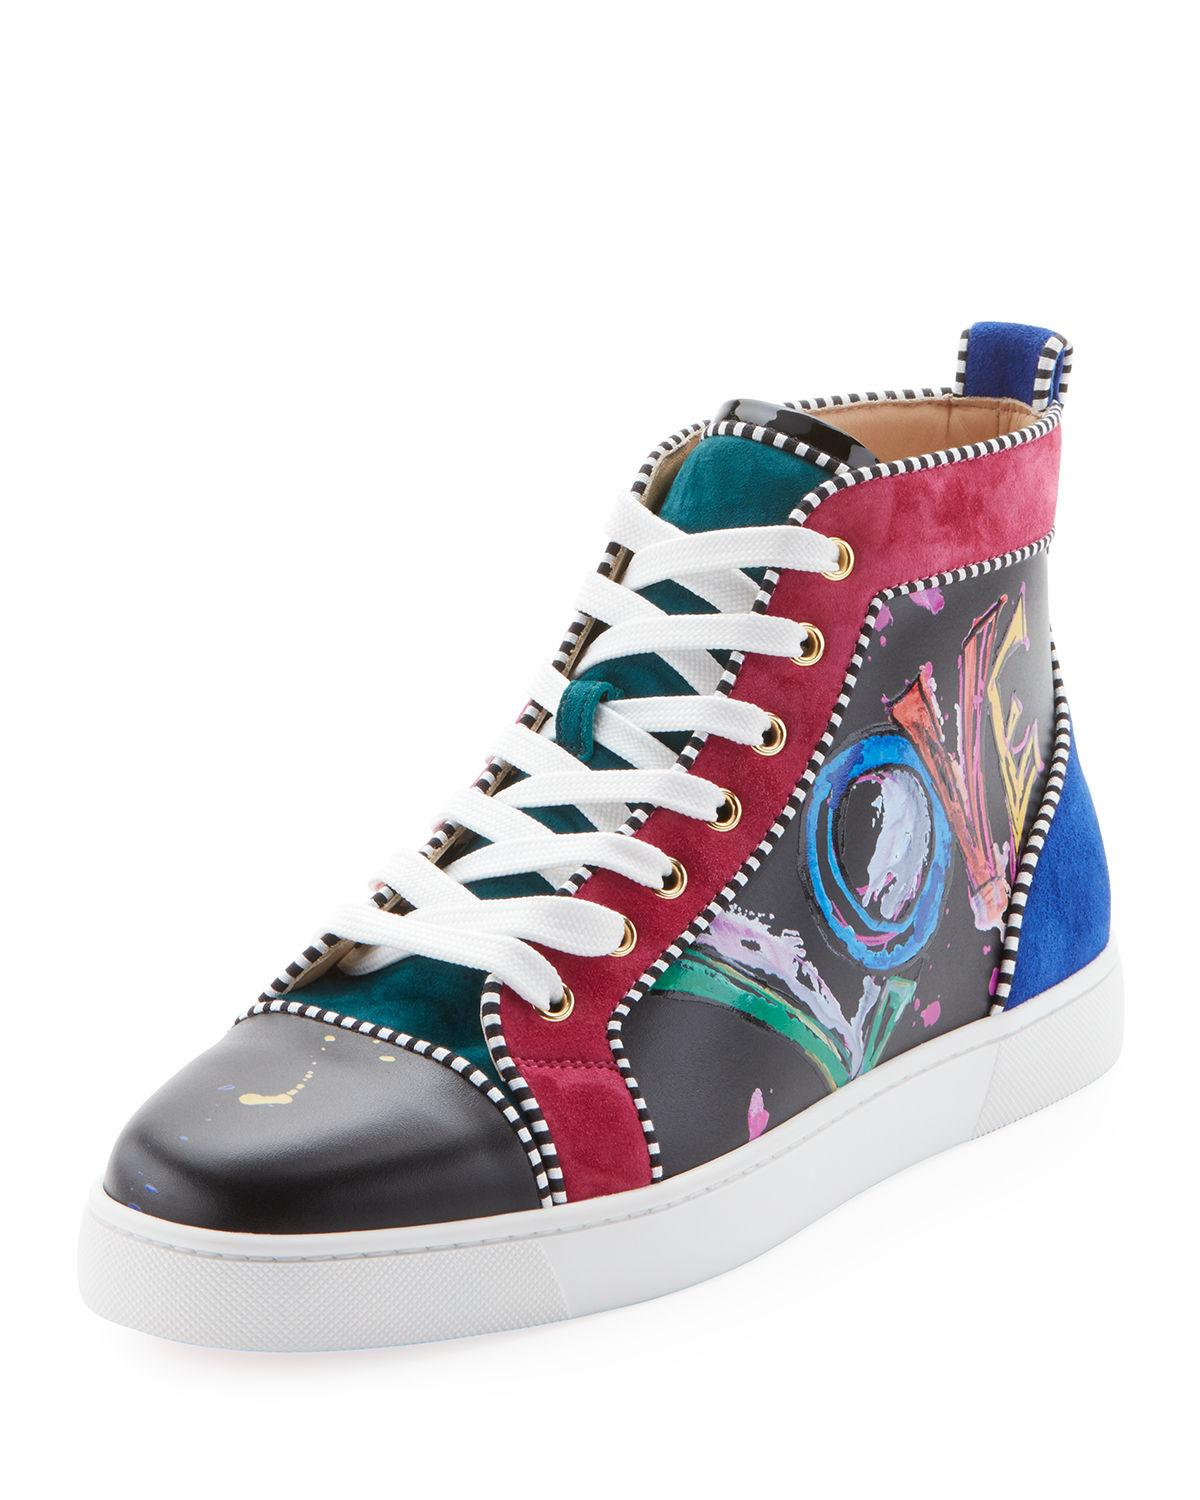 b4ce0673cbf Christian Louboutin Men s Louis Mid-Top Graphic Leather Sneakers ...